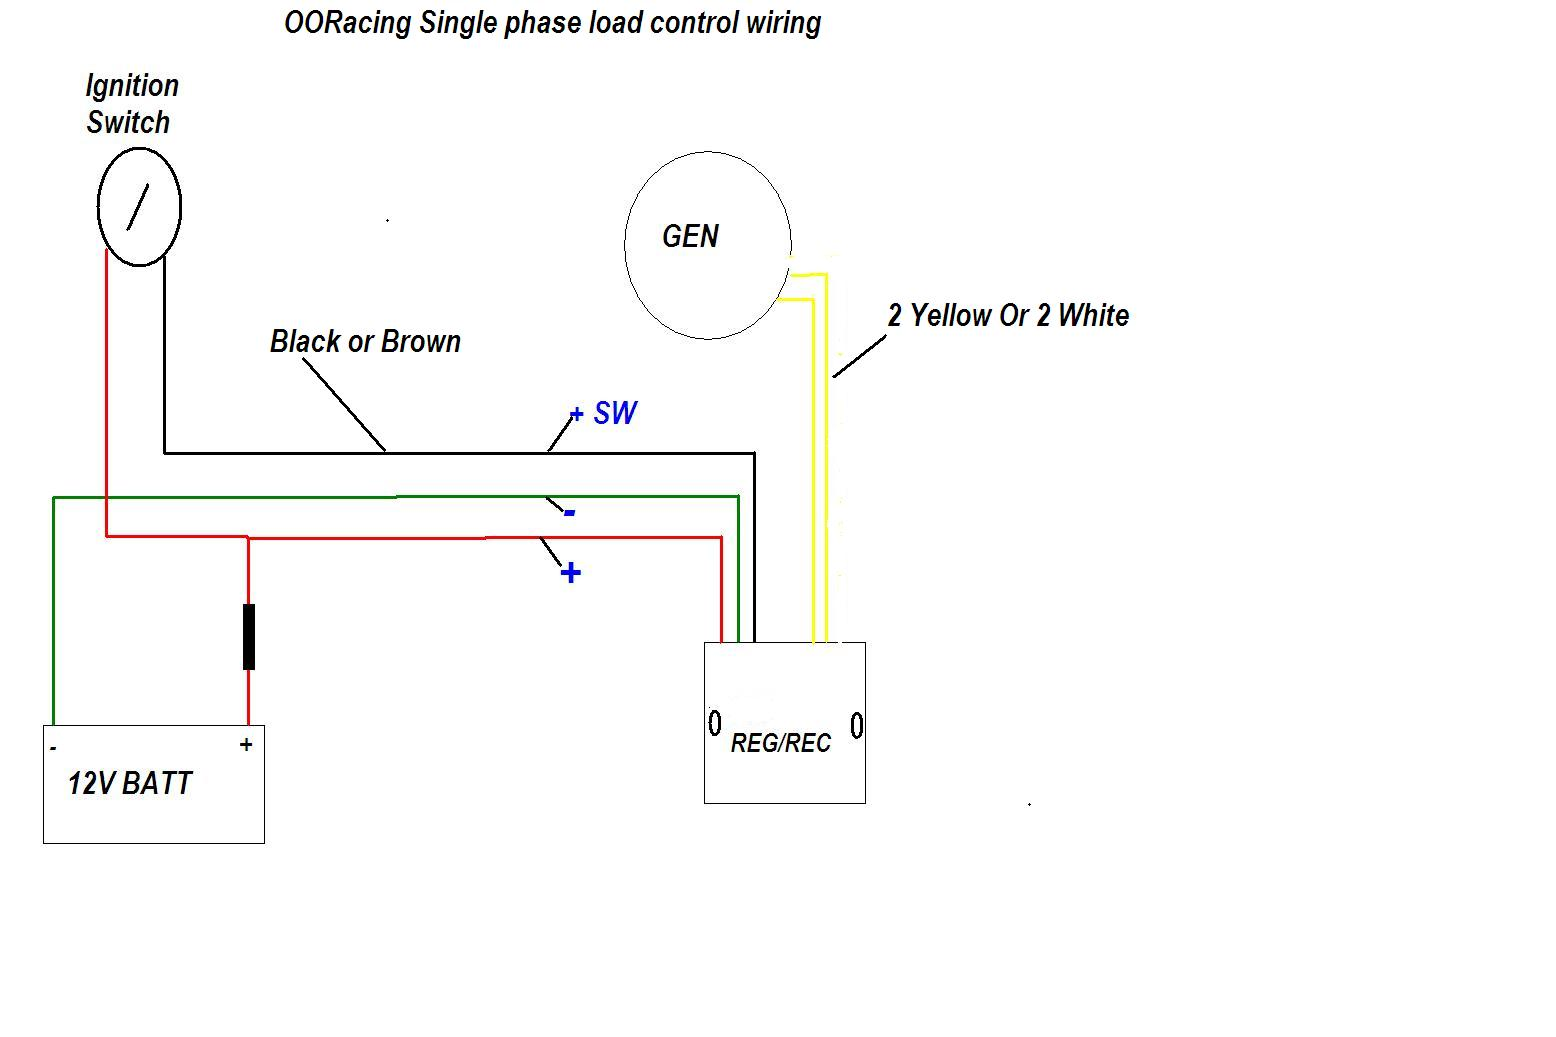 wiring diagram for 125cc dirt bike wiring diagrams  Single_phase_50W_Gen_wiring?resize\\\\\\\=665%2C443\\